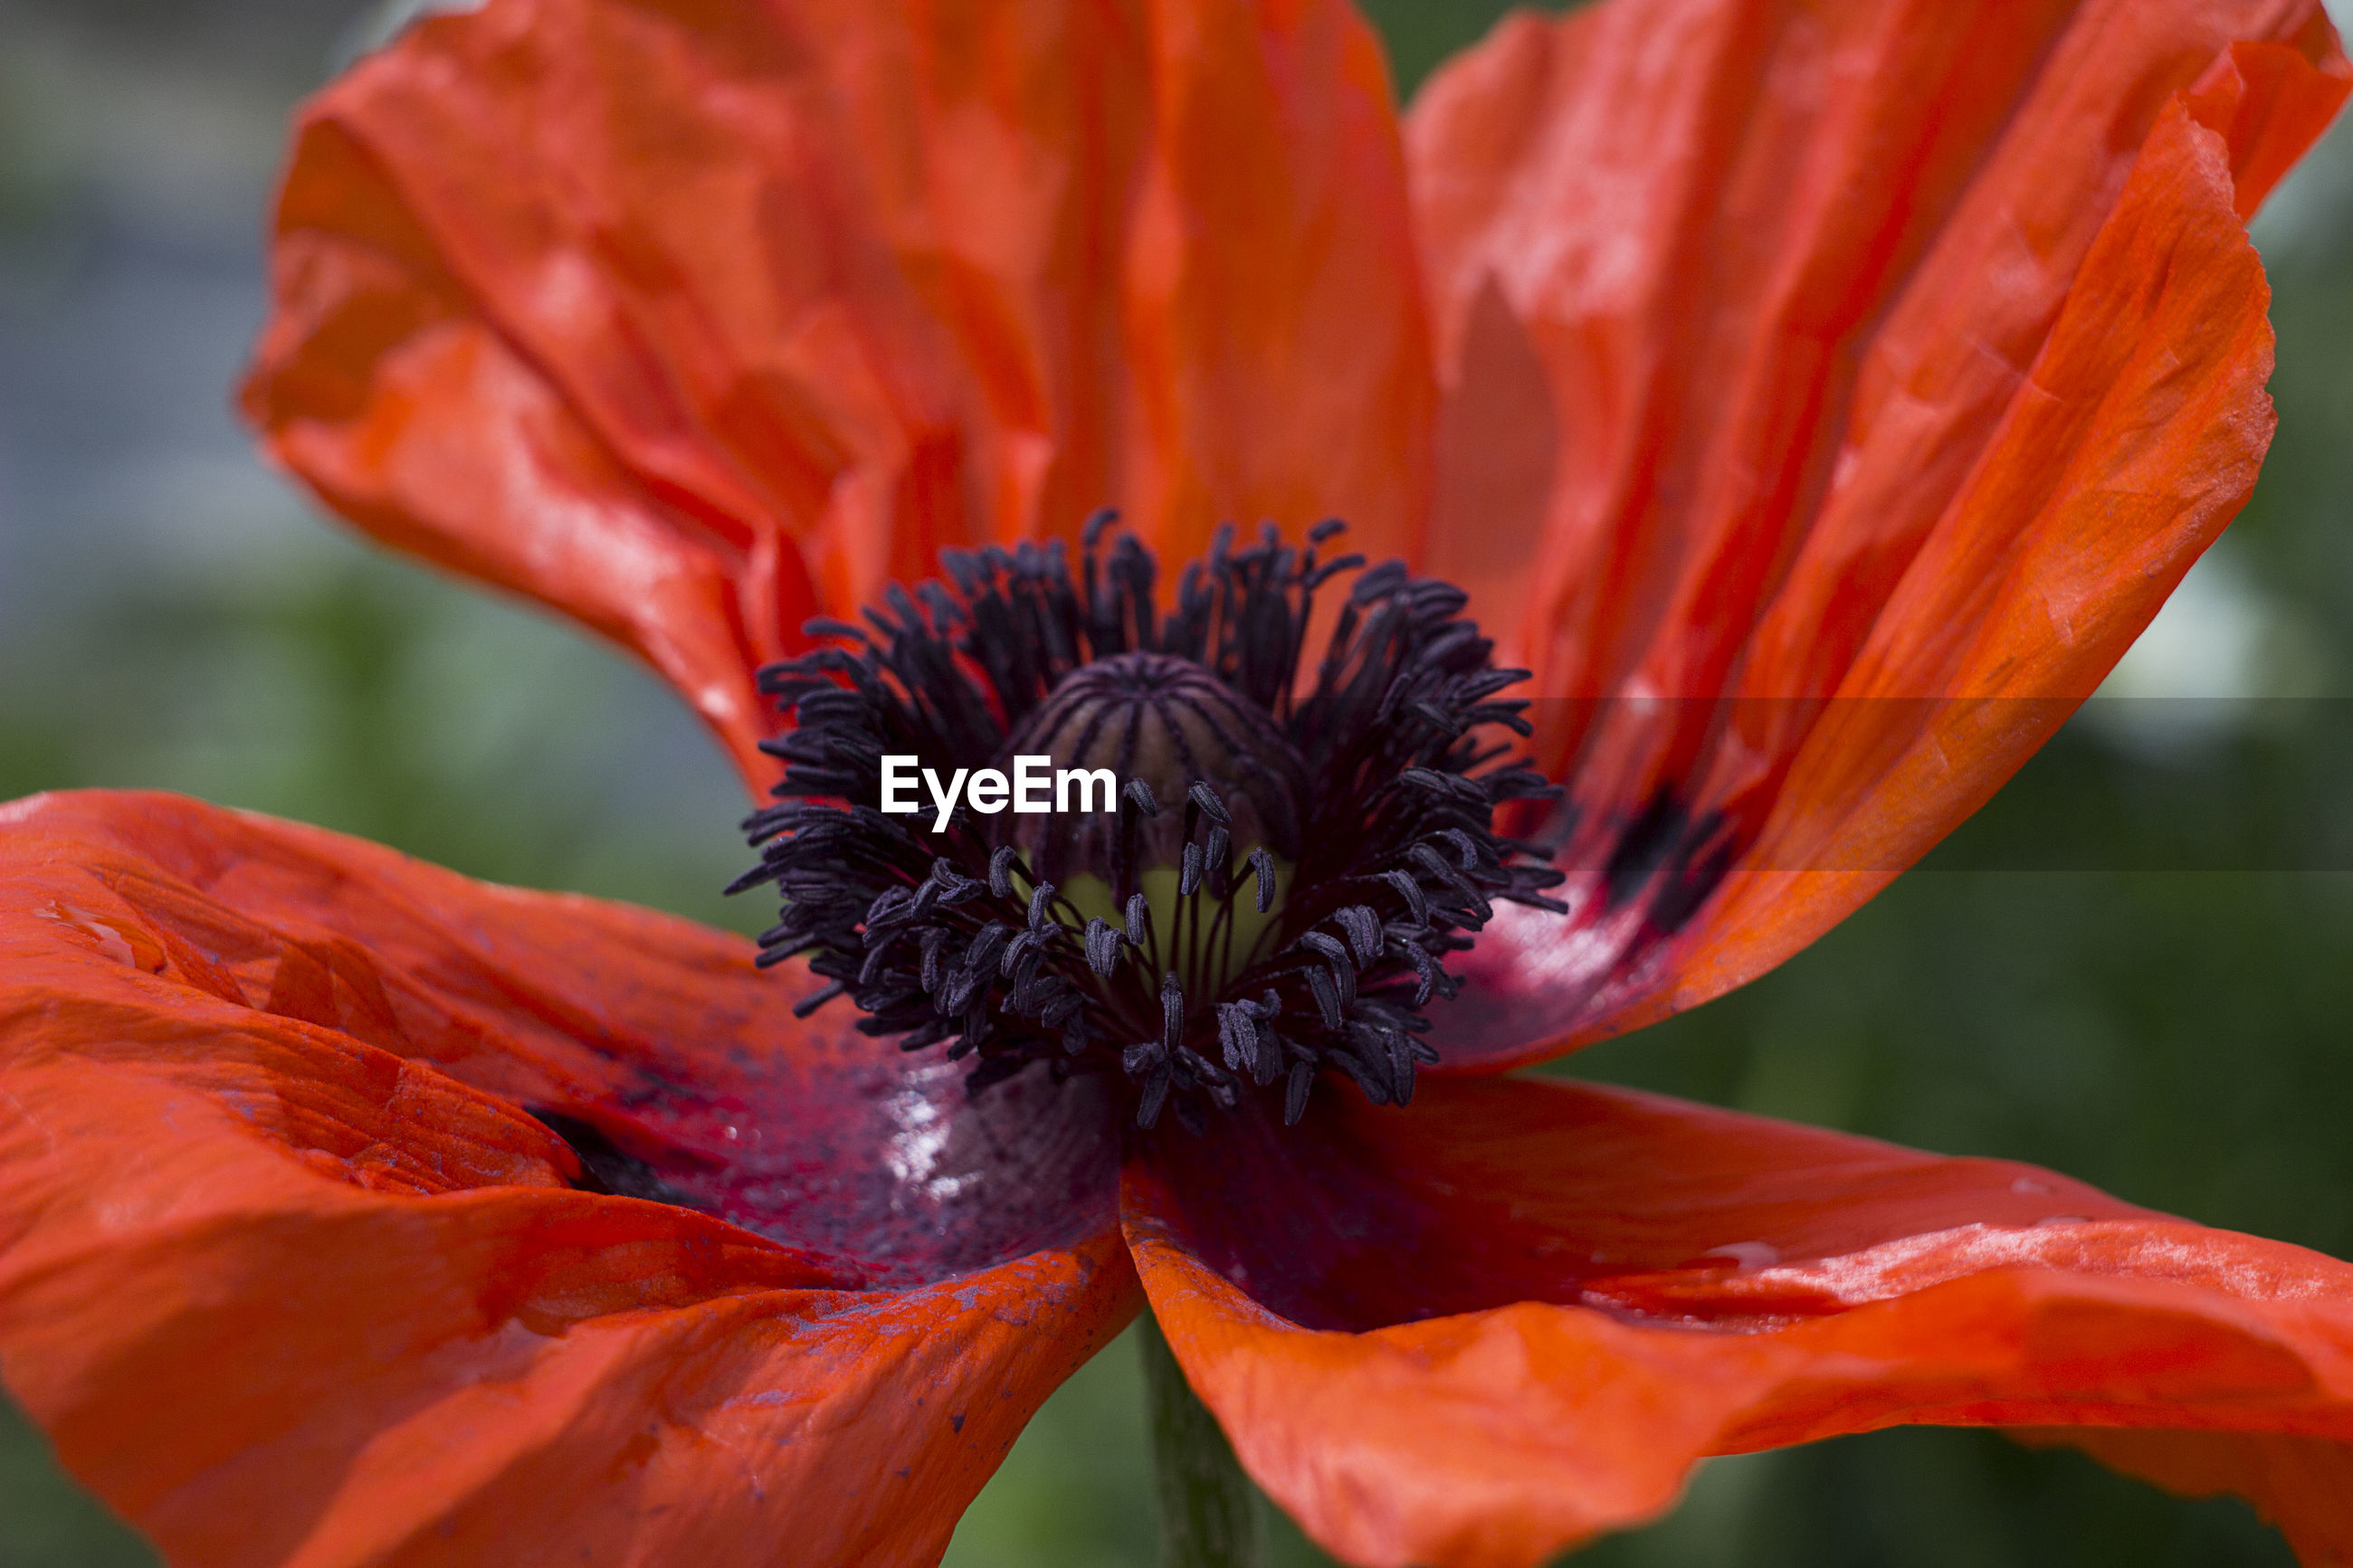 flower, petal, fragility, beauty in nature, growth, flower head, freshness, nature, blooming, red, orange color, plant, pollen, close-up, day, outdoors, focus on foreground, no people, park - man made space, stamen, hibiscus, day lily